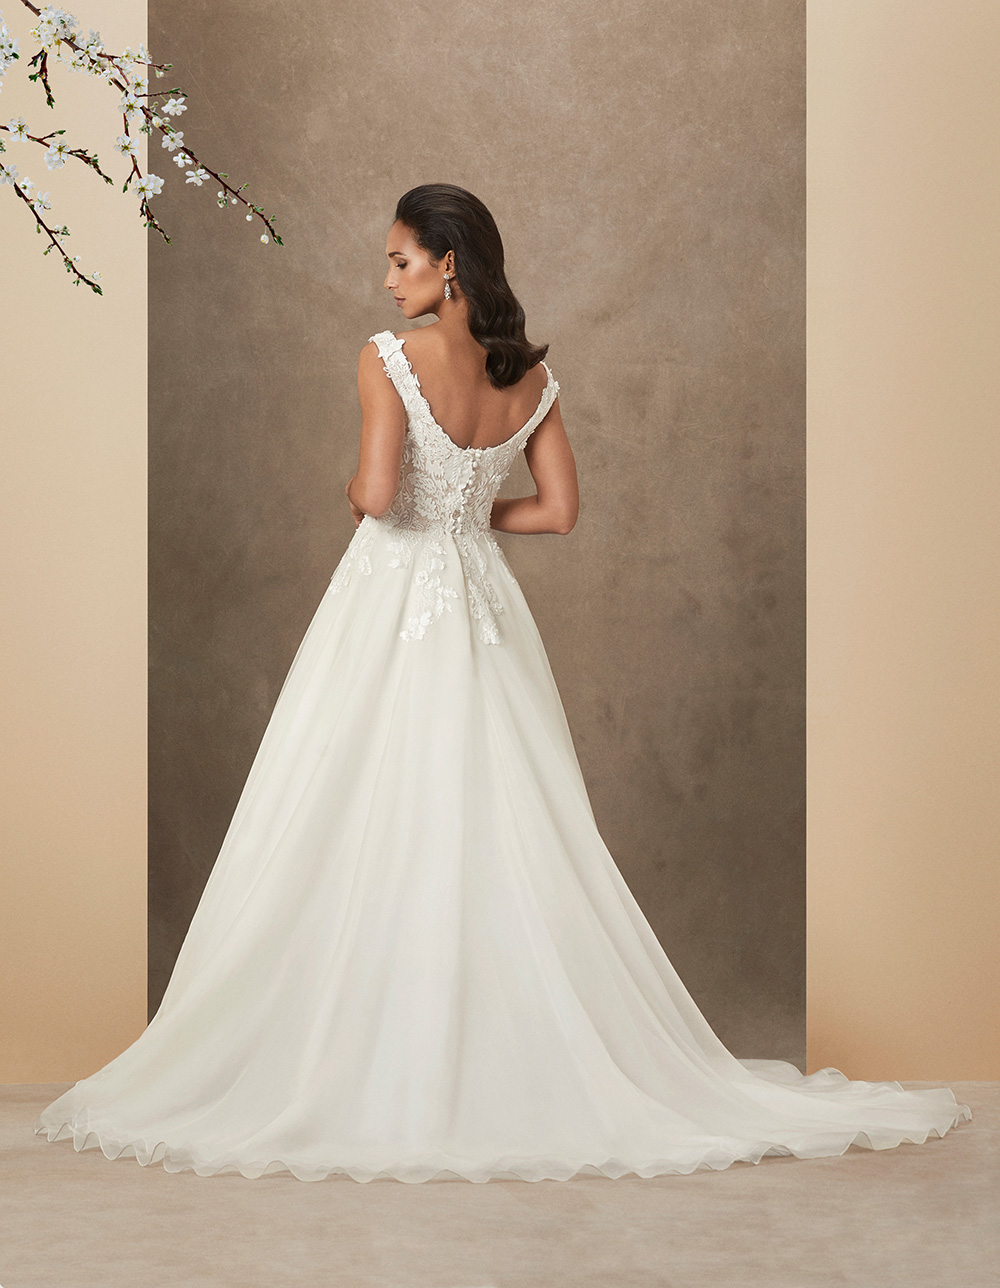 Aura luxury wedding gown by Caroline Castigliano